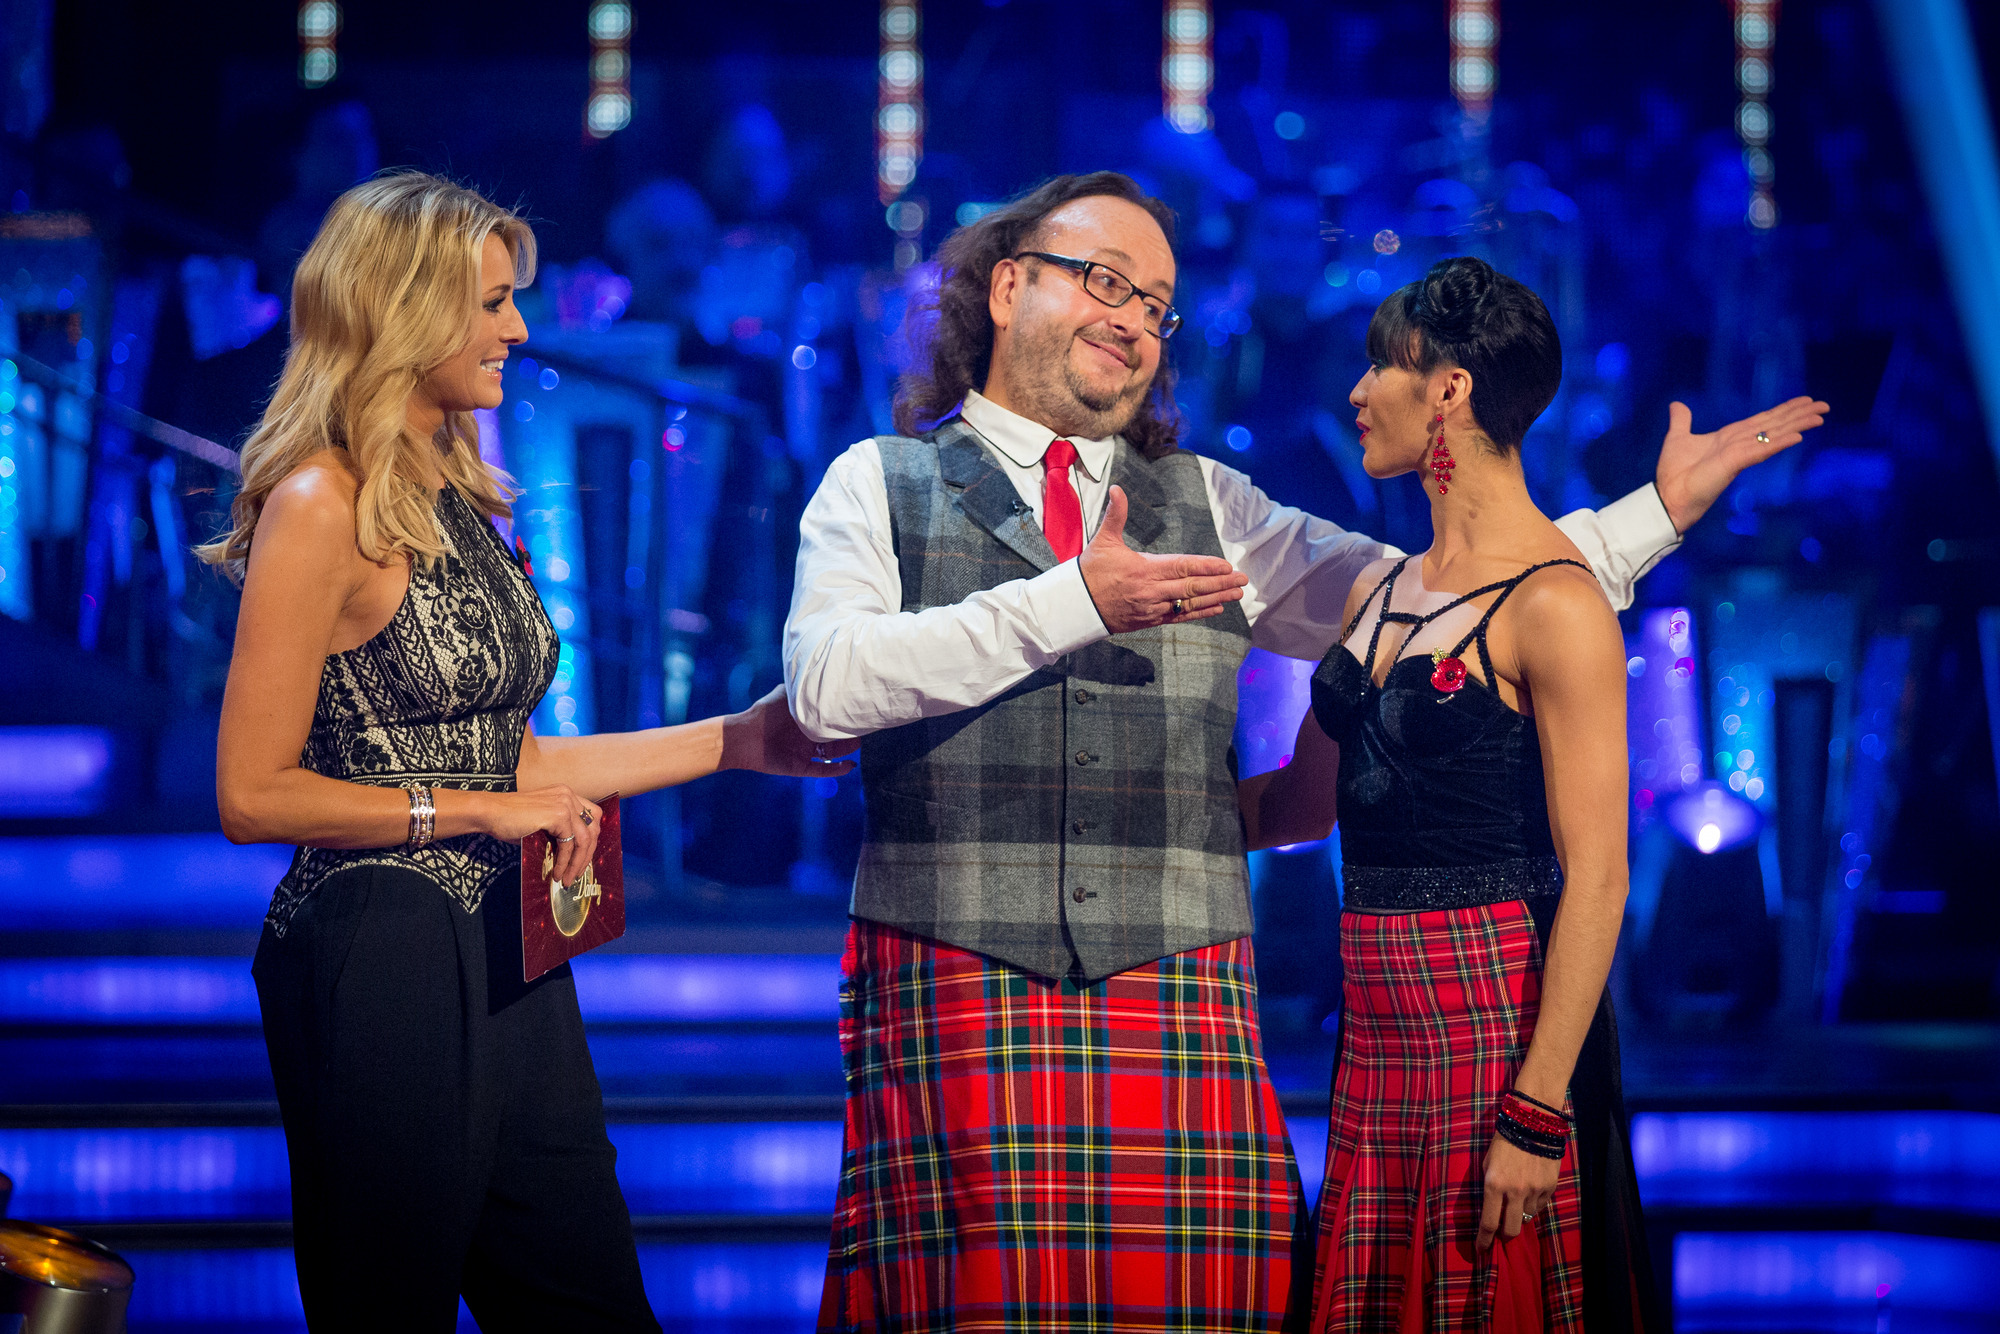 Tess Daly, Dave Myers, Karen Hauer - (C) BBC - Photographer: Guy Levy